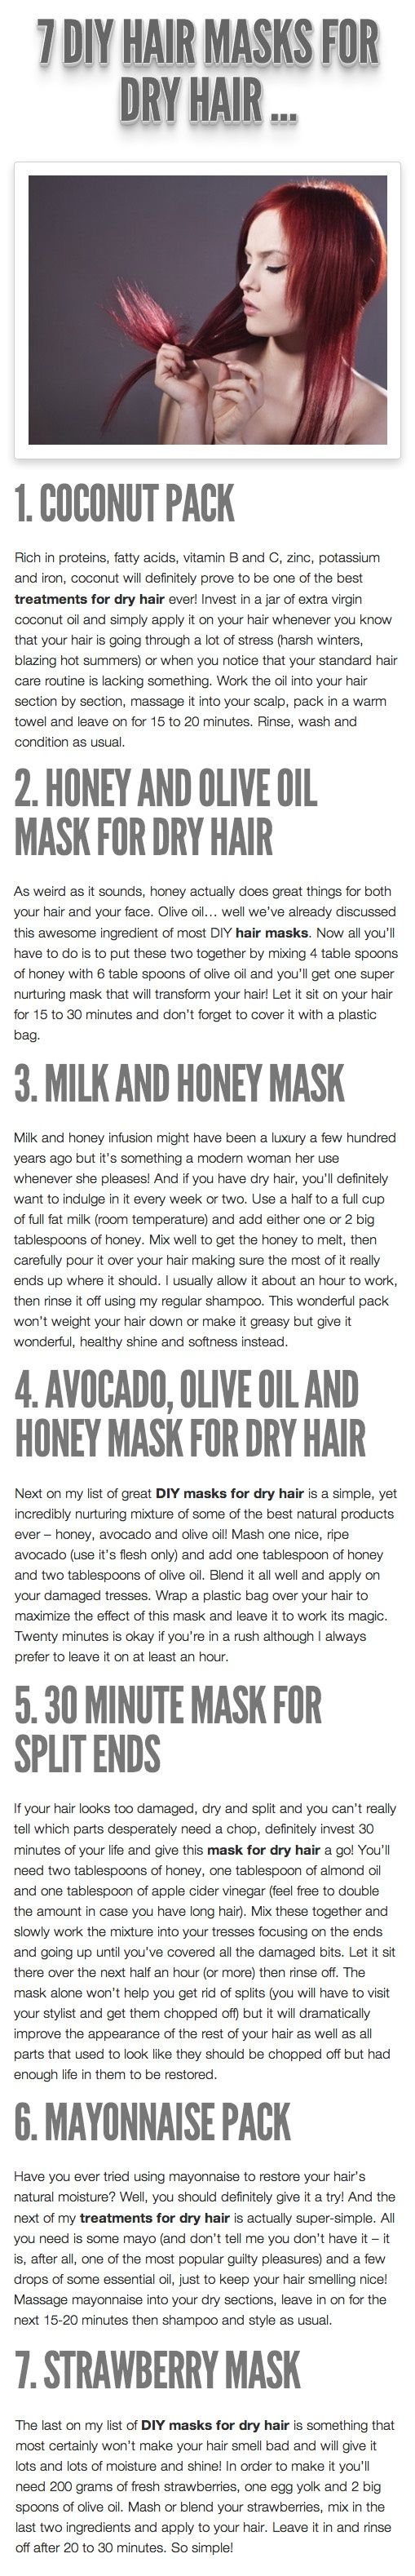 PRODUCTS | HAIR MASQUES :: 7 DIY Hair Masks For DRY Hair #naturalskincare #healthyskin #skincareproducts #Australianskincare #AqiskinCare